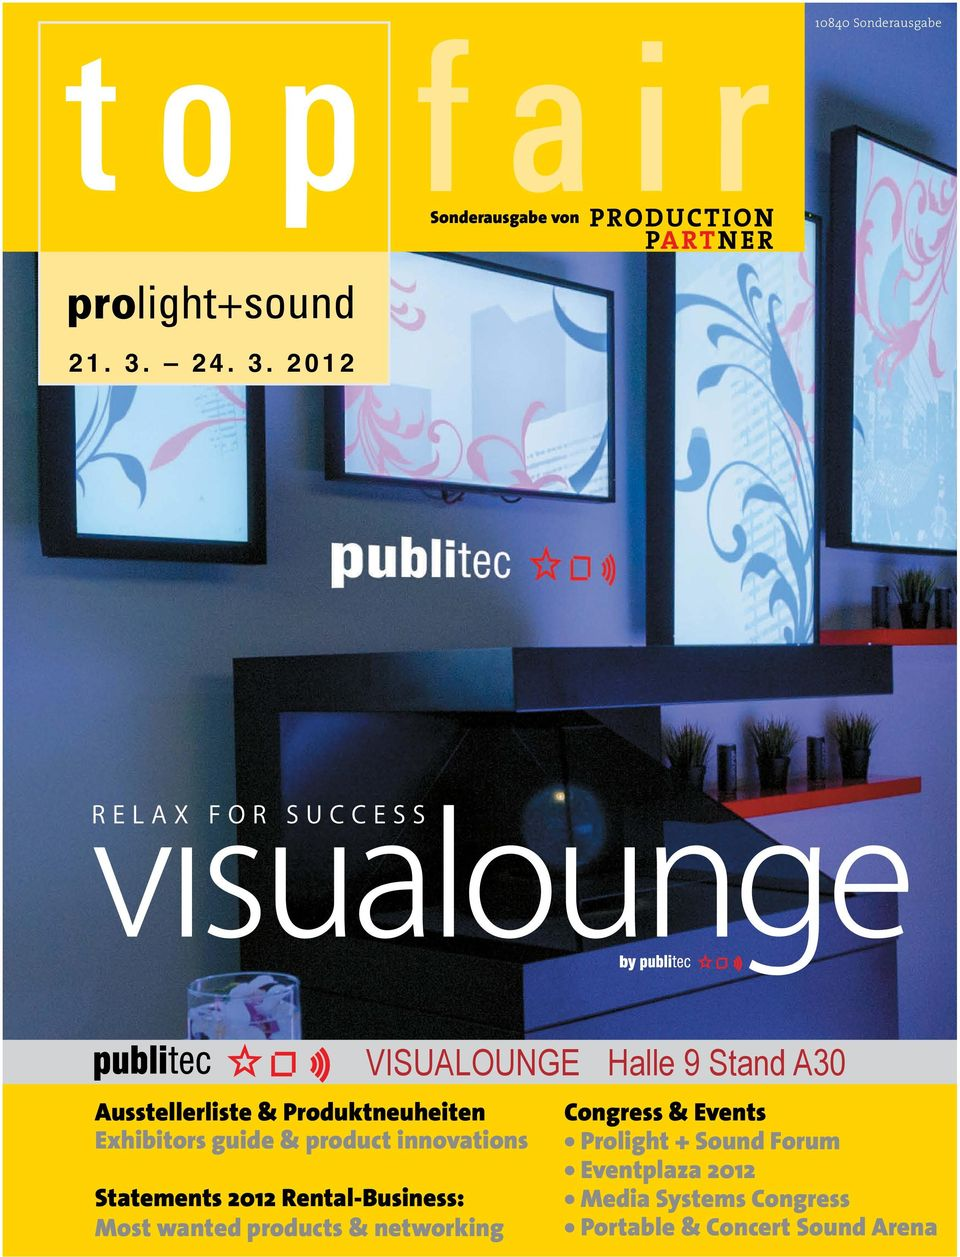 2012 VISUALOUNGE Ausstellerliste & Produktneuheiten Exhibitors guide & product